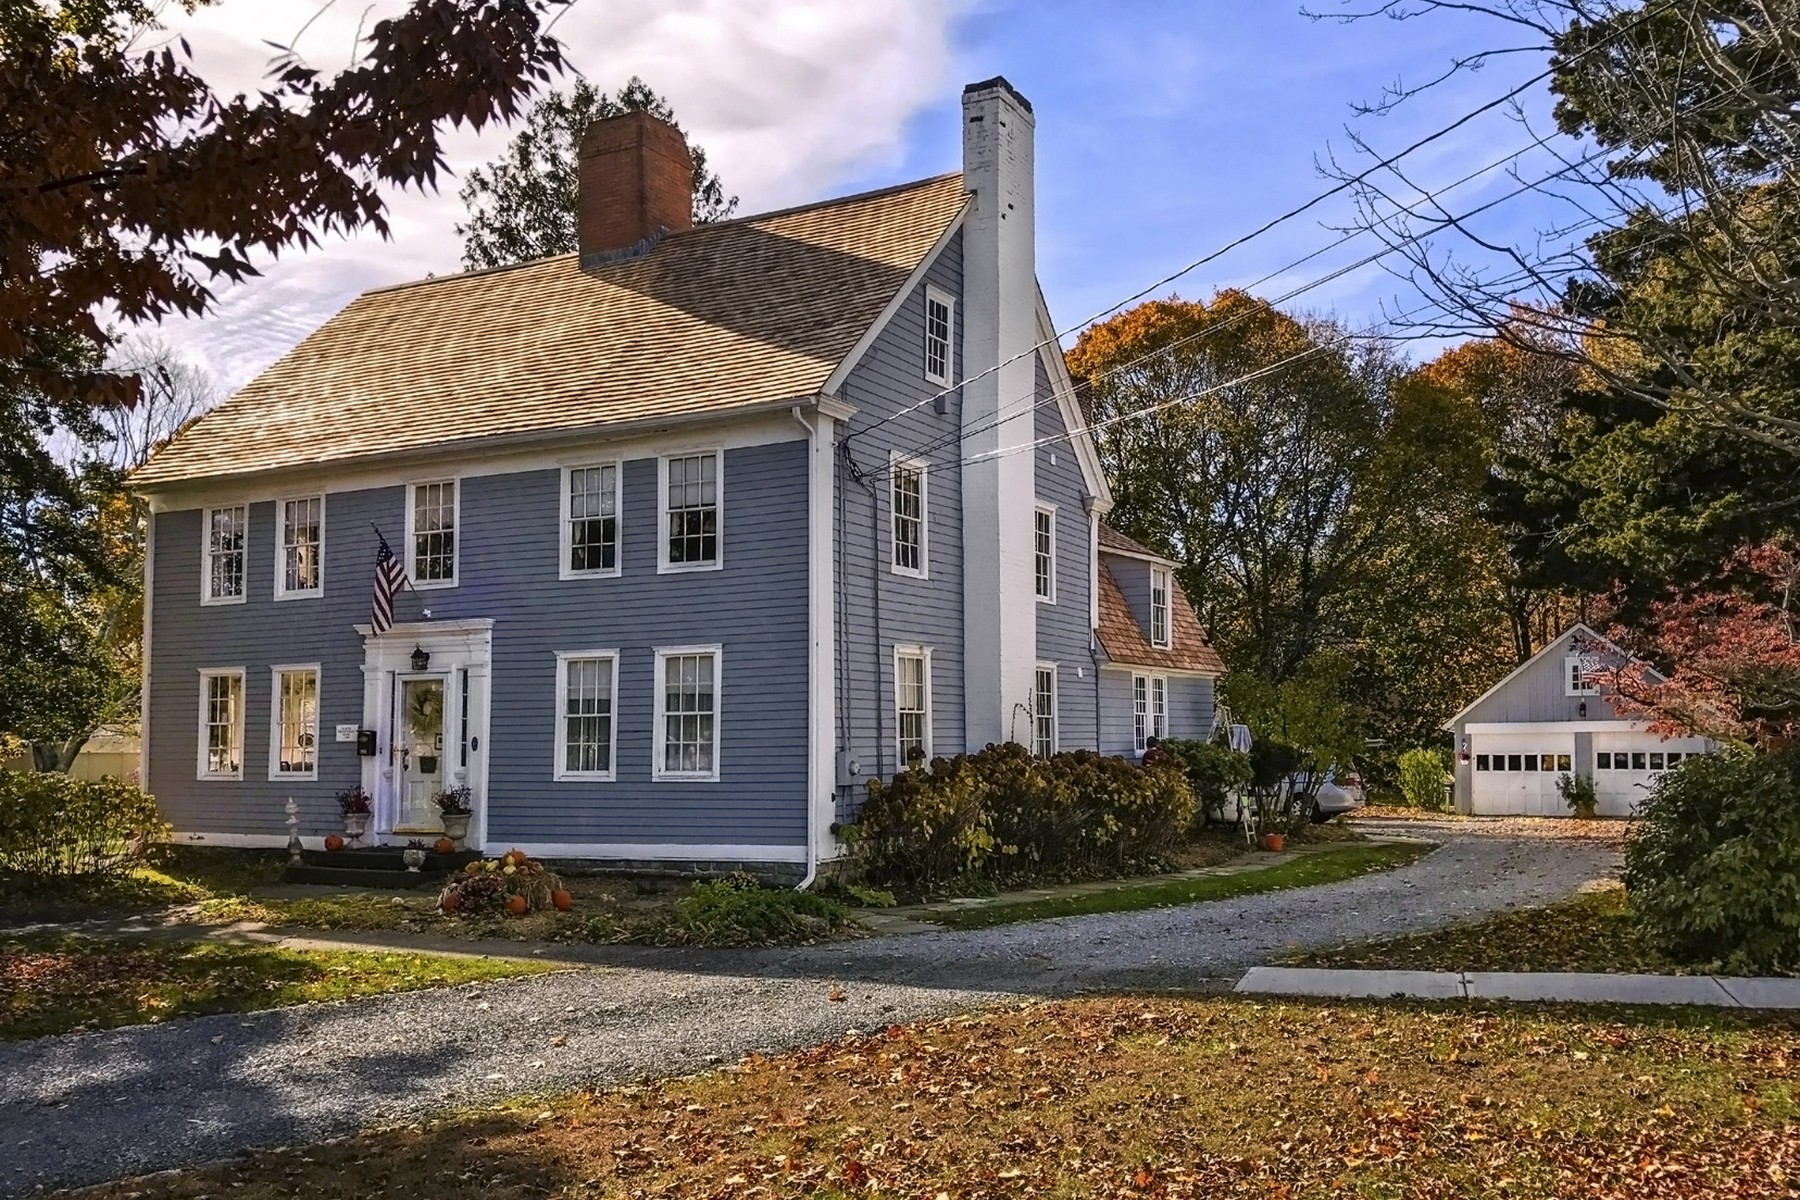 Casa Unifamiliar por un Venta en The Deacon Timothy Pratt Inn c.1746 325 Main St Old Saybrook, Connecticut, 06475 Estados Unidos